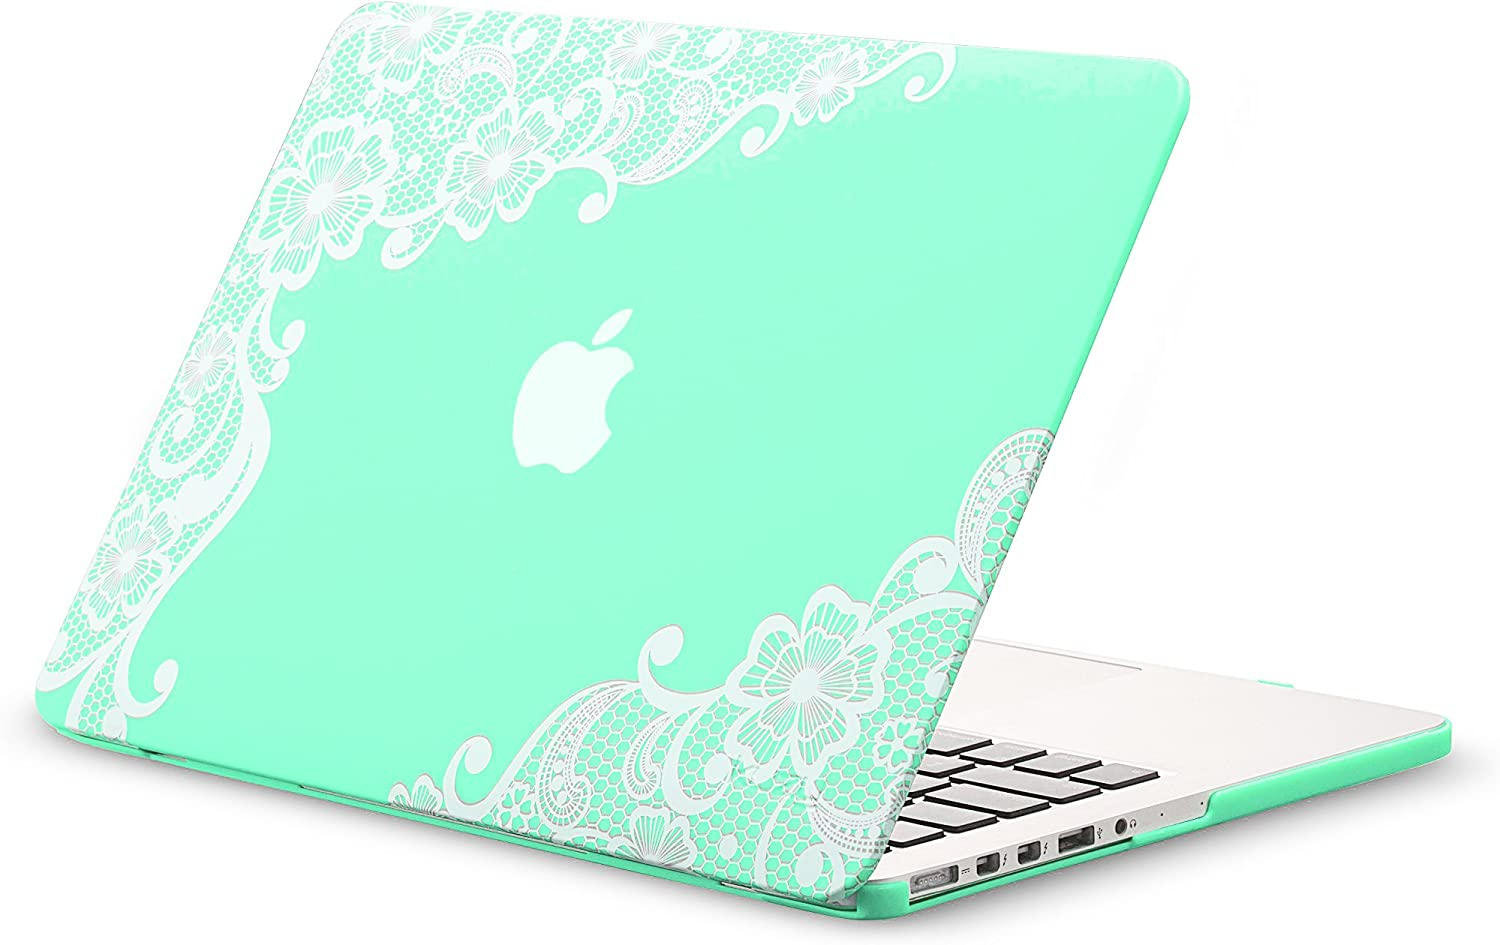 Kuzy - Older Version MacBook Pro 13.3 inch Case (Release 2015-2012) Rubberized Hard Cover for Model A1502 / A1425 with Retina Display Shell Plastic - Lace Mint